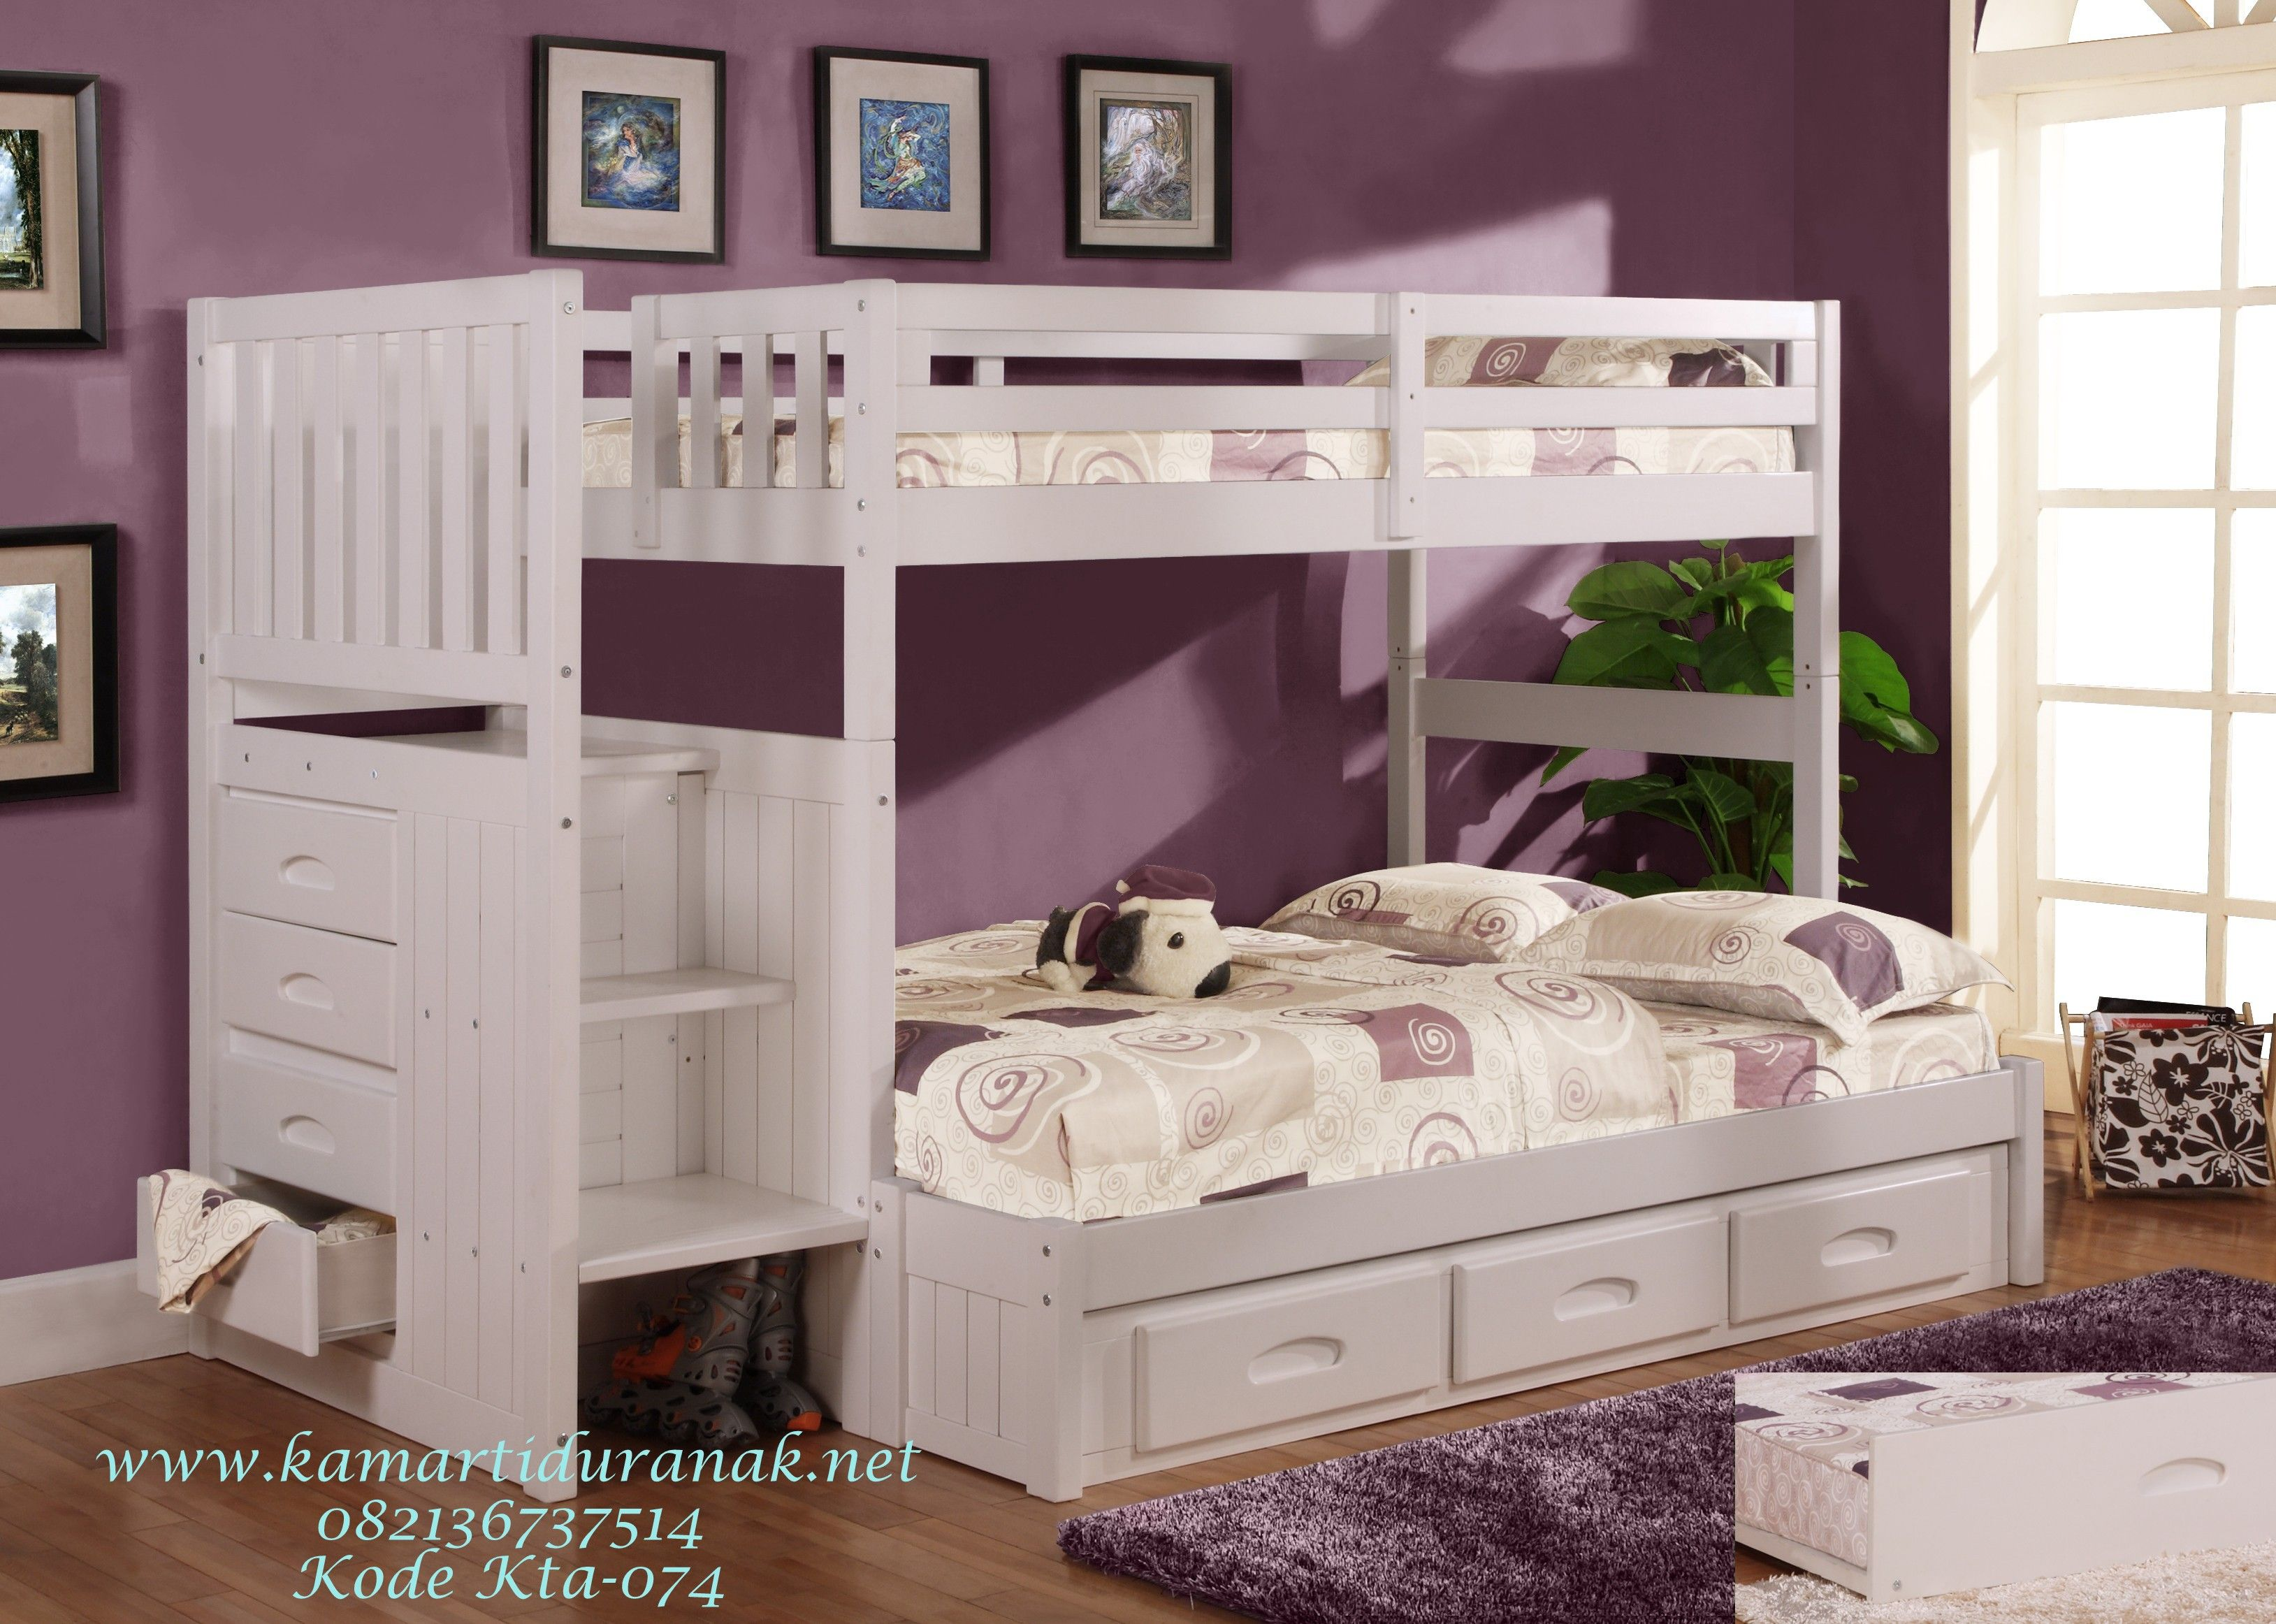 Discovery World Furniture White Twin Full Staircase Bunk Bed 0214 And Stair  Stepper Bunk Beds For Kids With Matching Bedroom Furniture.